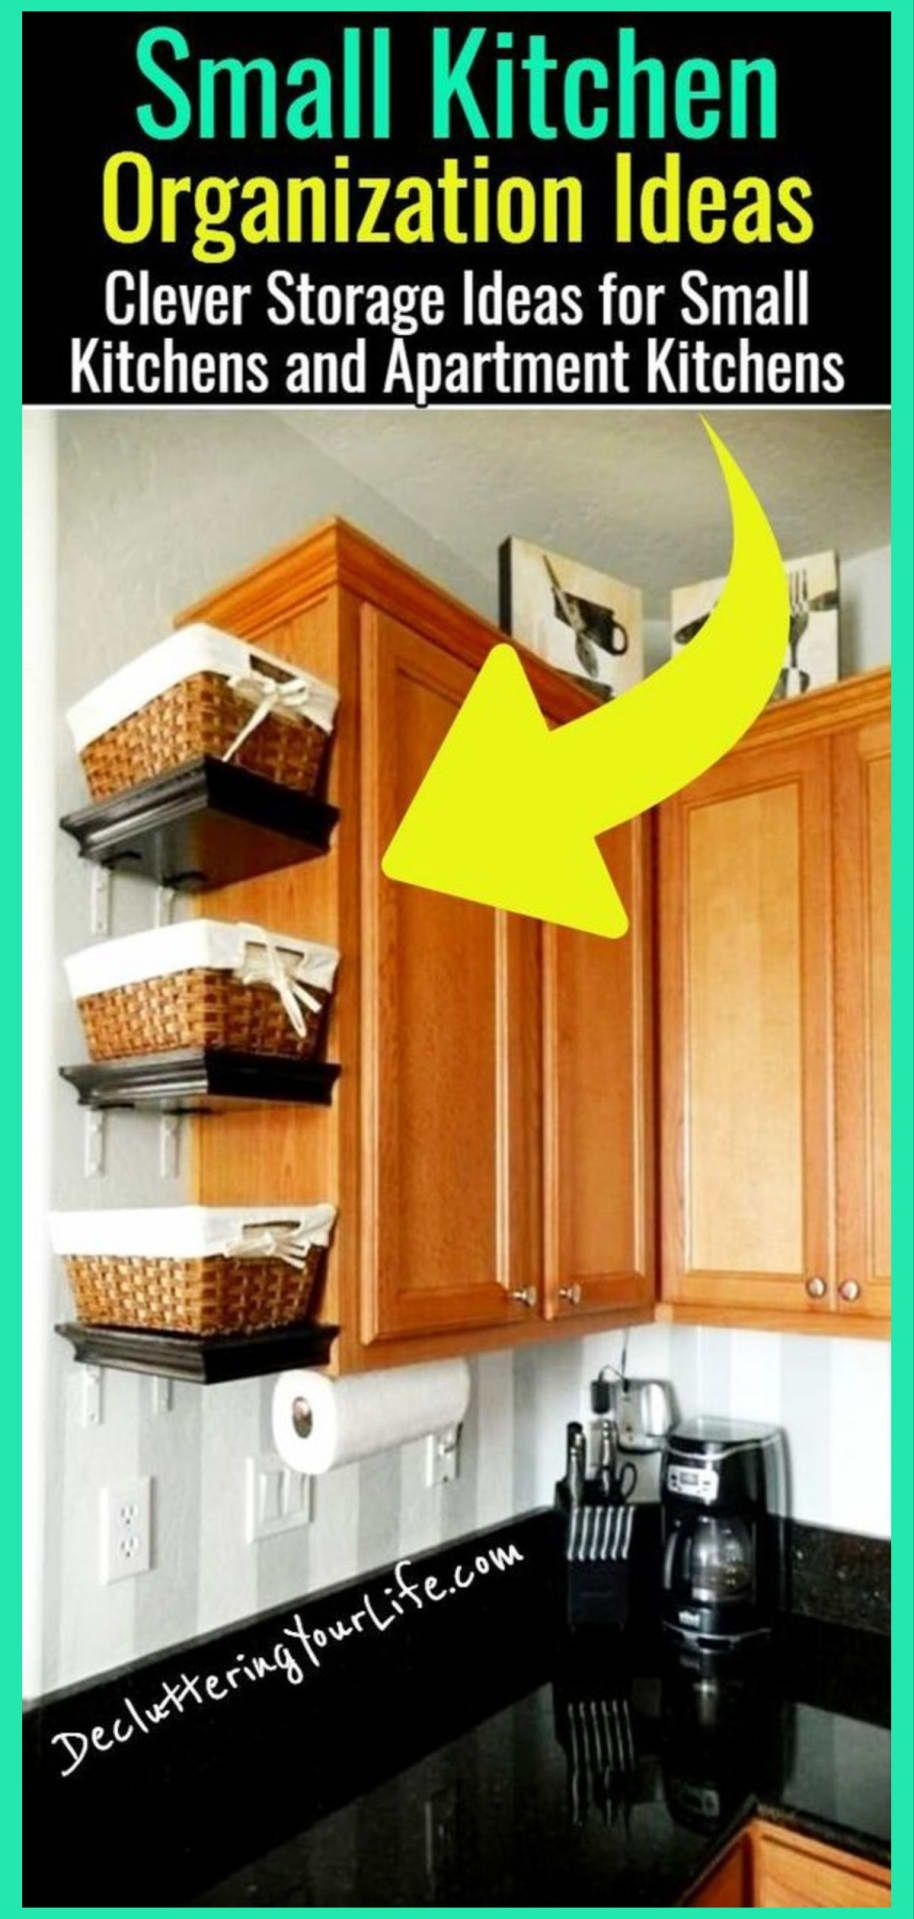 Declutter Your Kitchen - DIY Shelves To Organize a Country Farmhouse Kitchen on a Budget - Decluttering Your Life